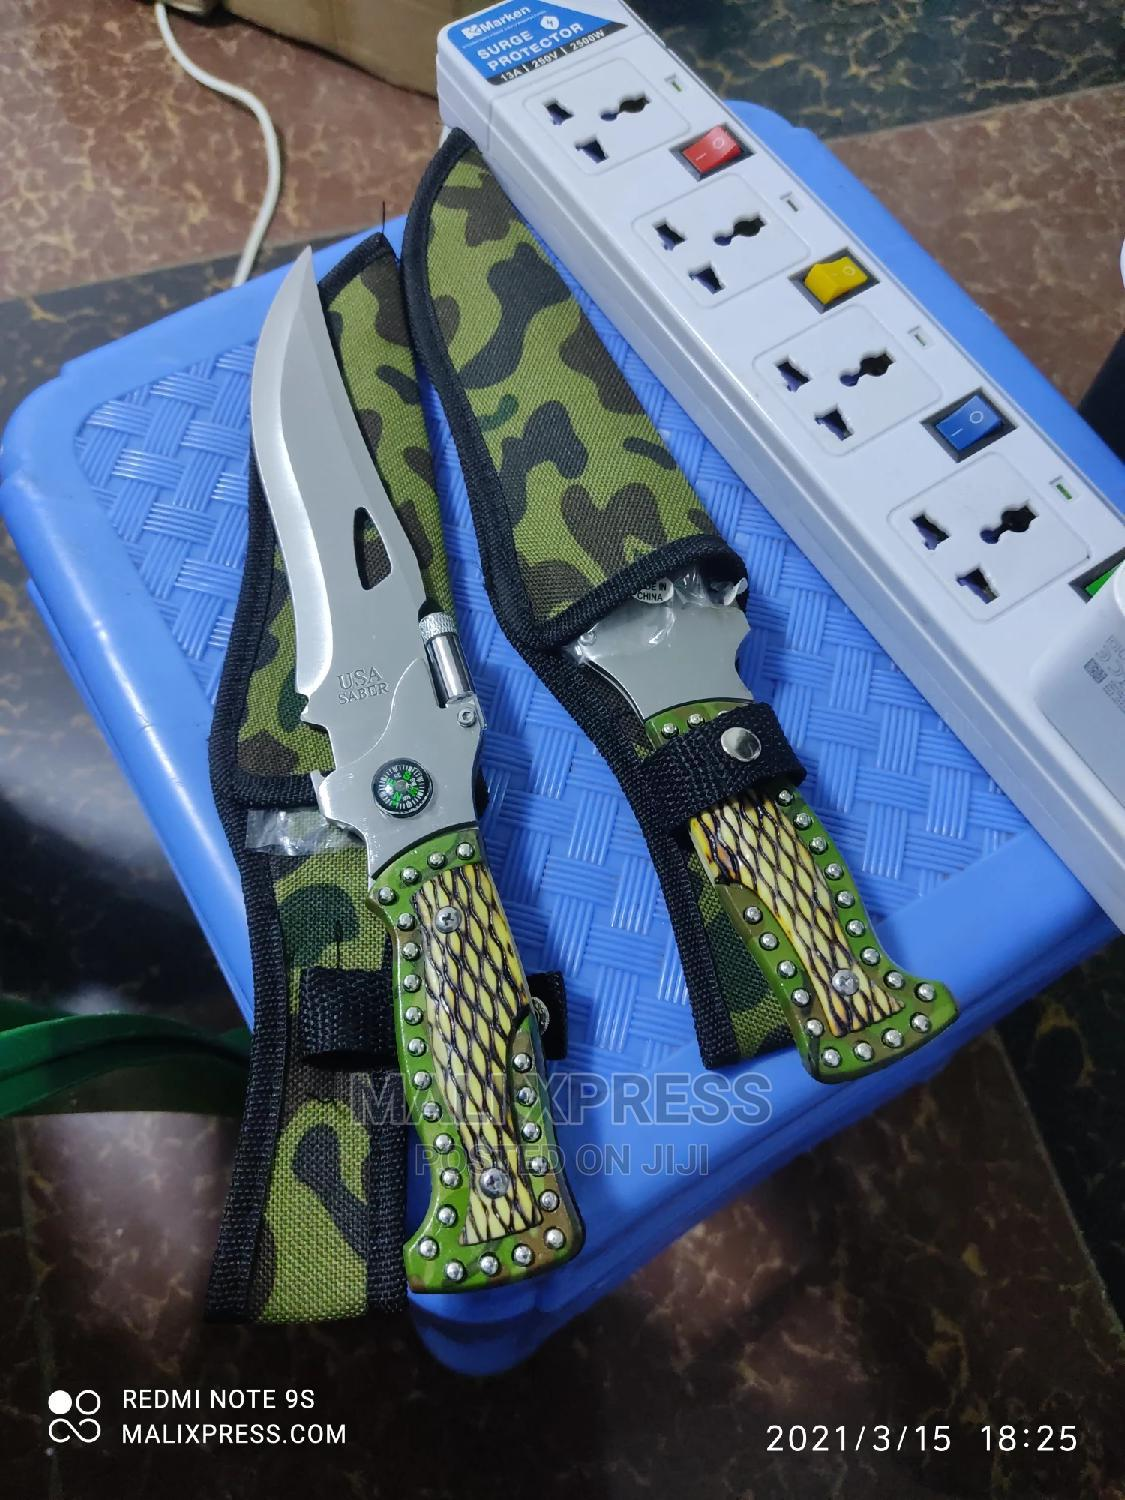 Tactical Camping Knife With LED Light